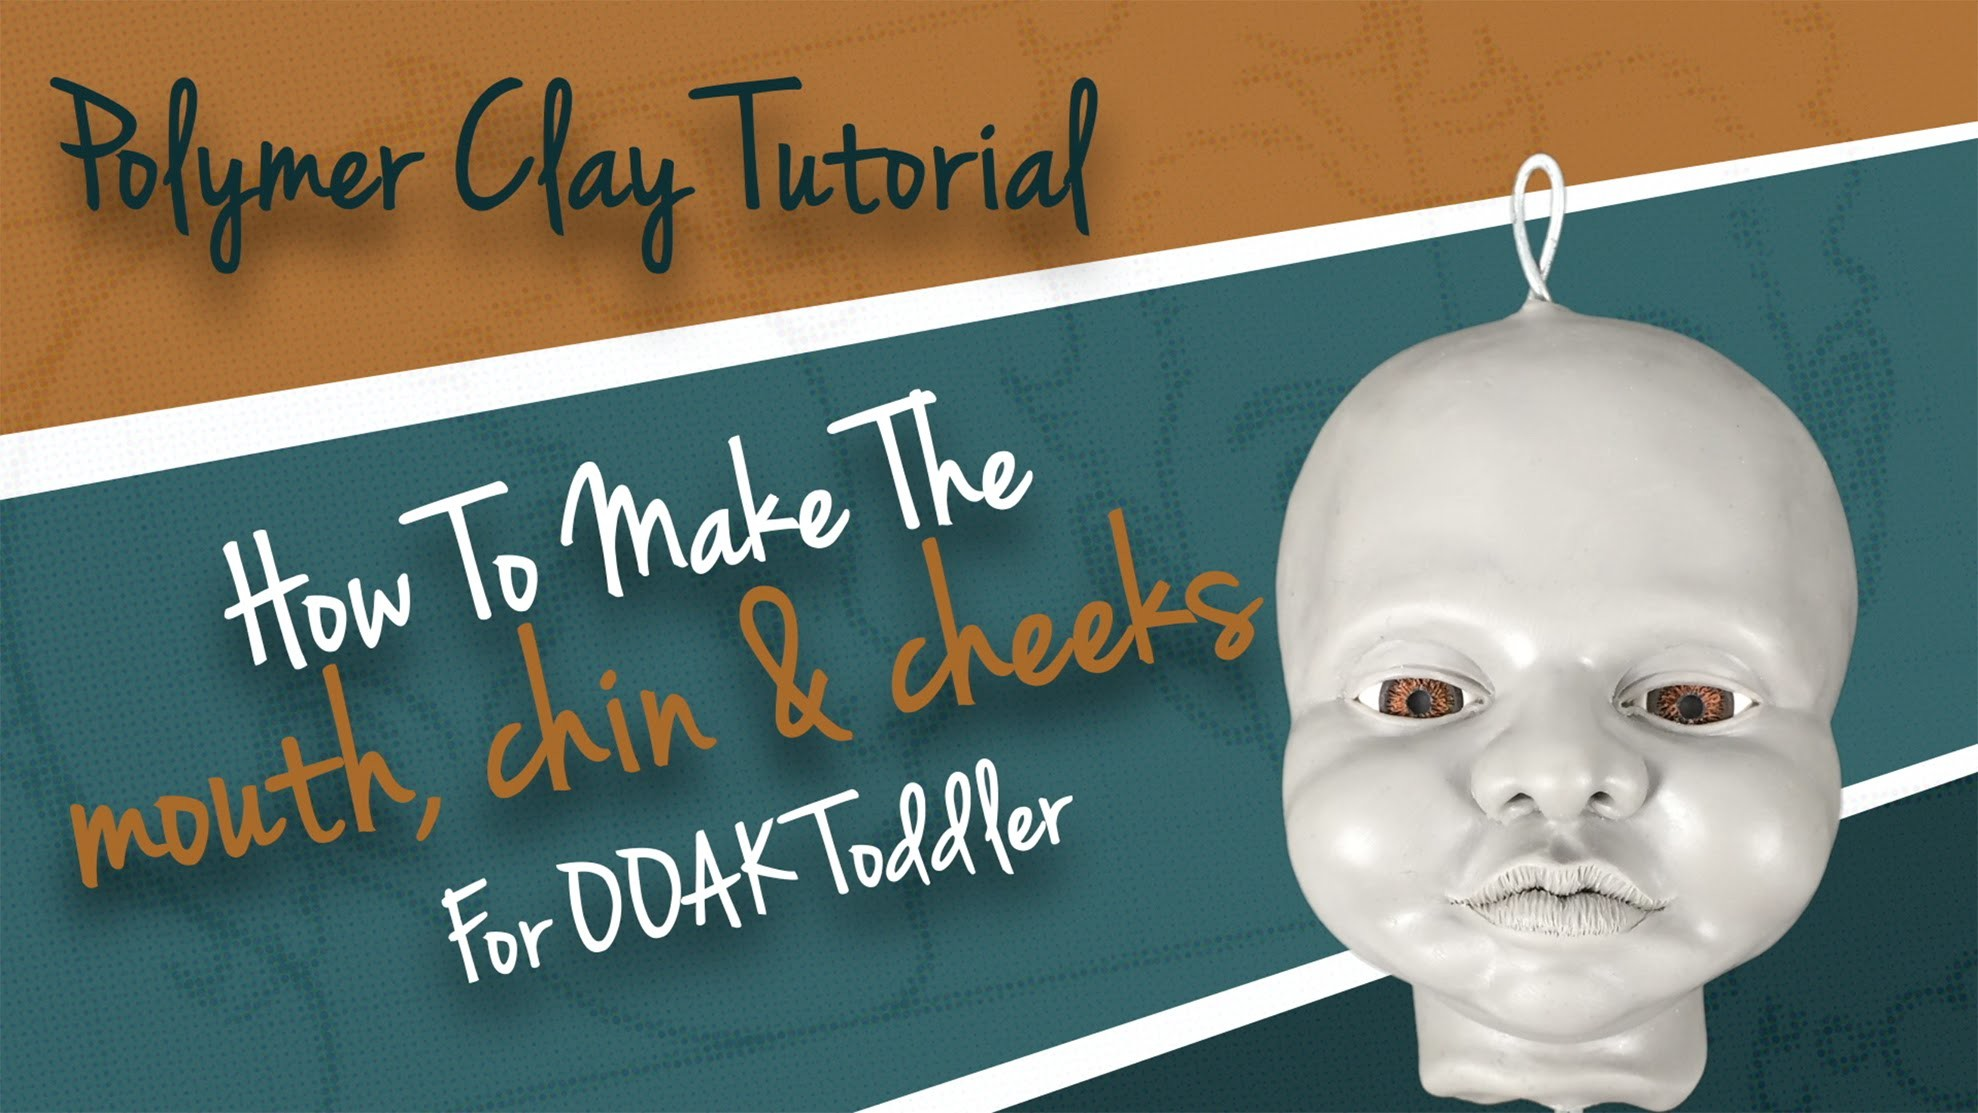 "Polymer Clay Tutorial ""How to make the mouth, chin & cheeks for OOAK Toddler"""